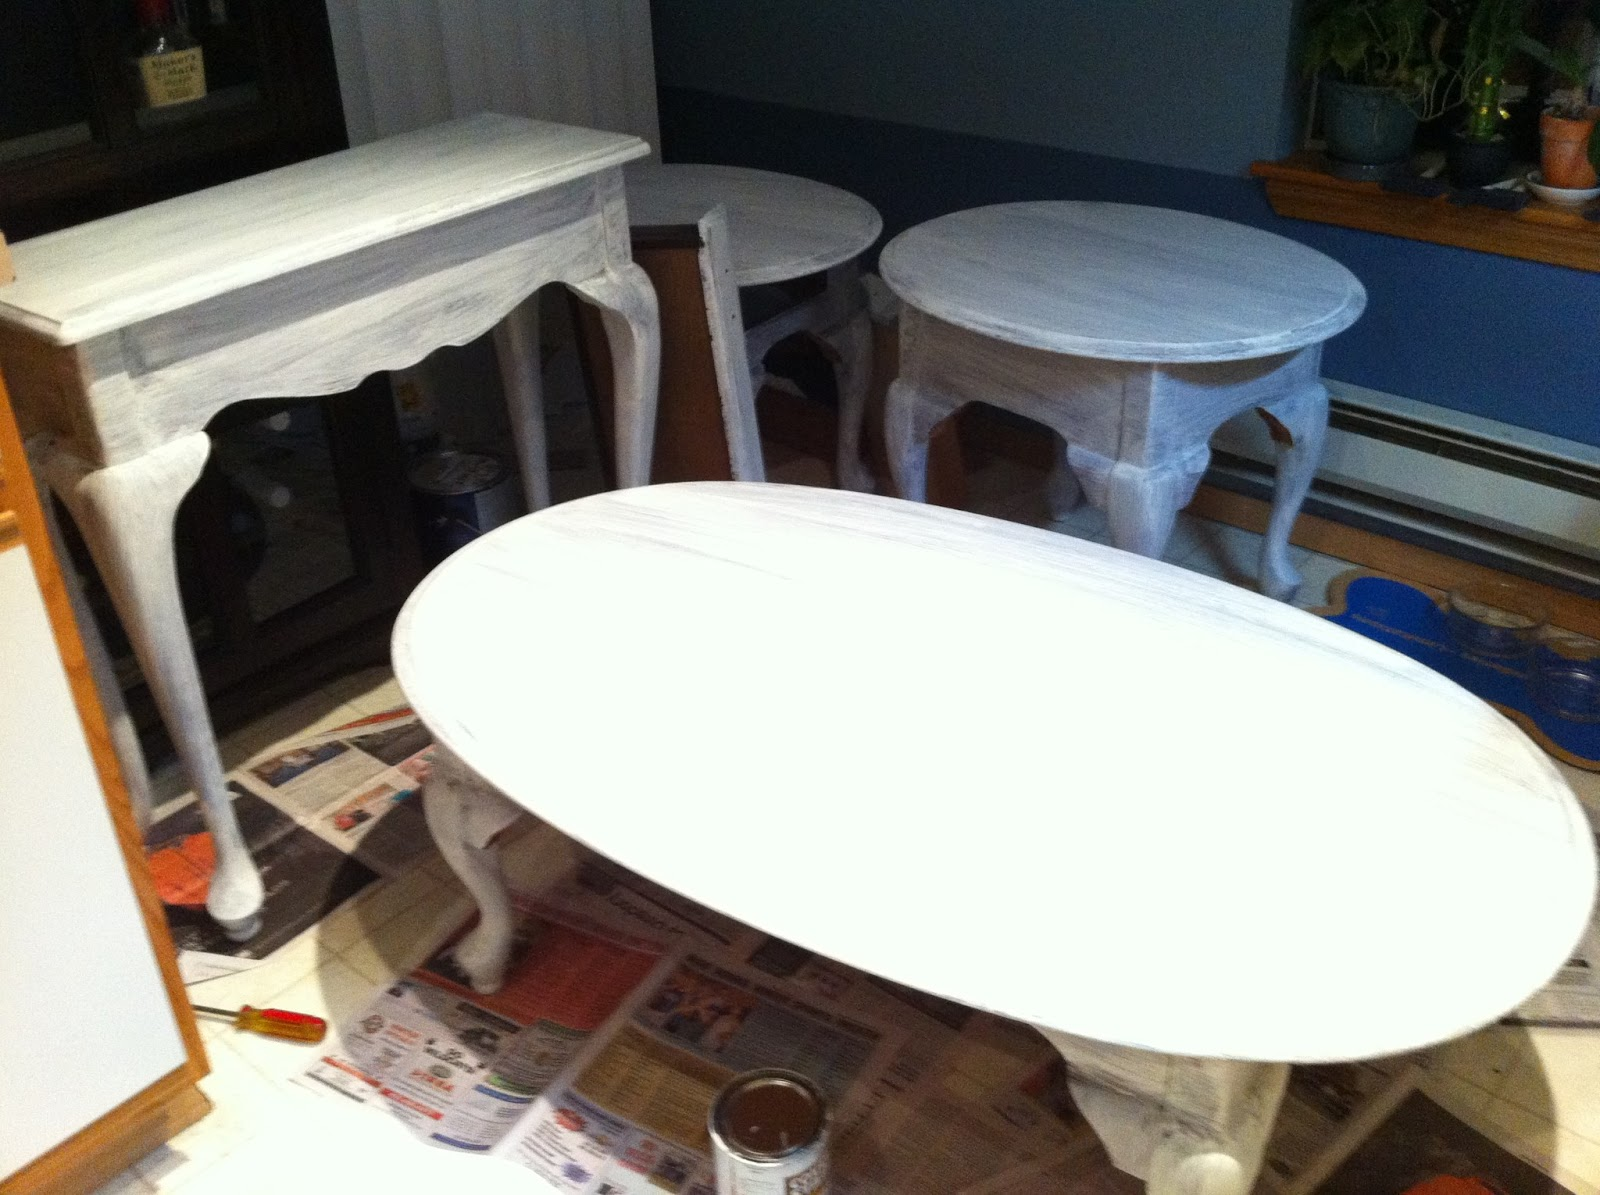 Painted Queen Anne Sofa Table What Can I Use To Clean My Cream Leather Sophisticated Junk Pile Living Room Set End